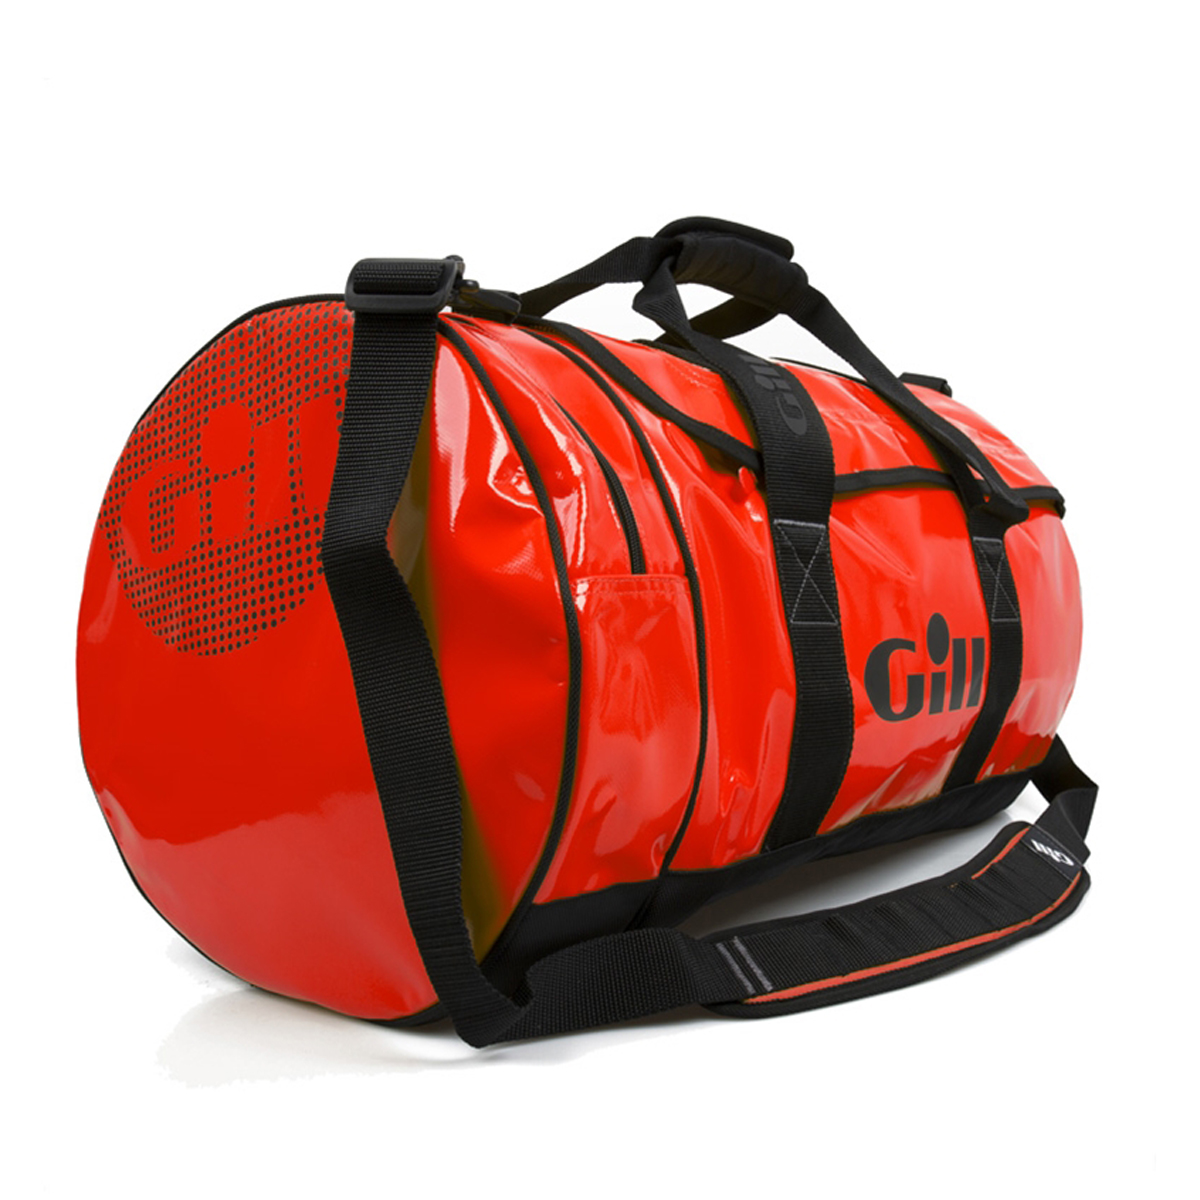 Gill Tarp Barrel Bag (L061)